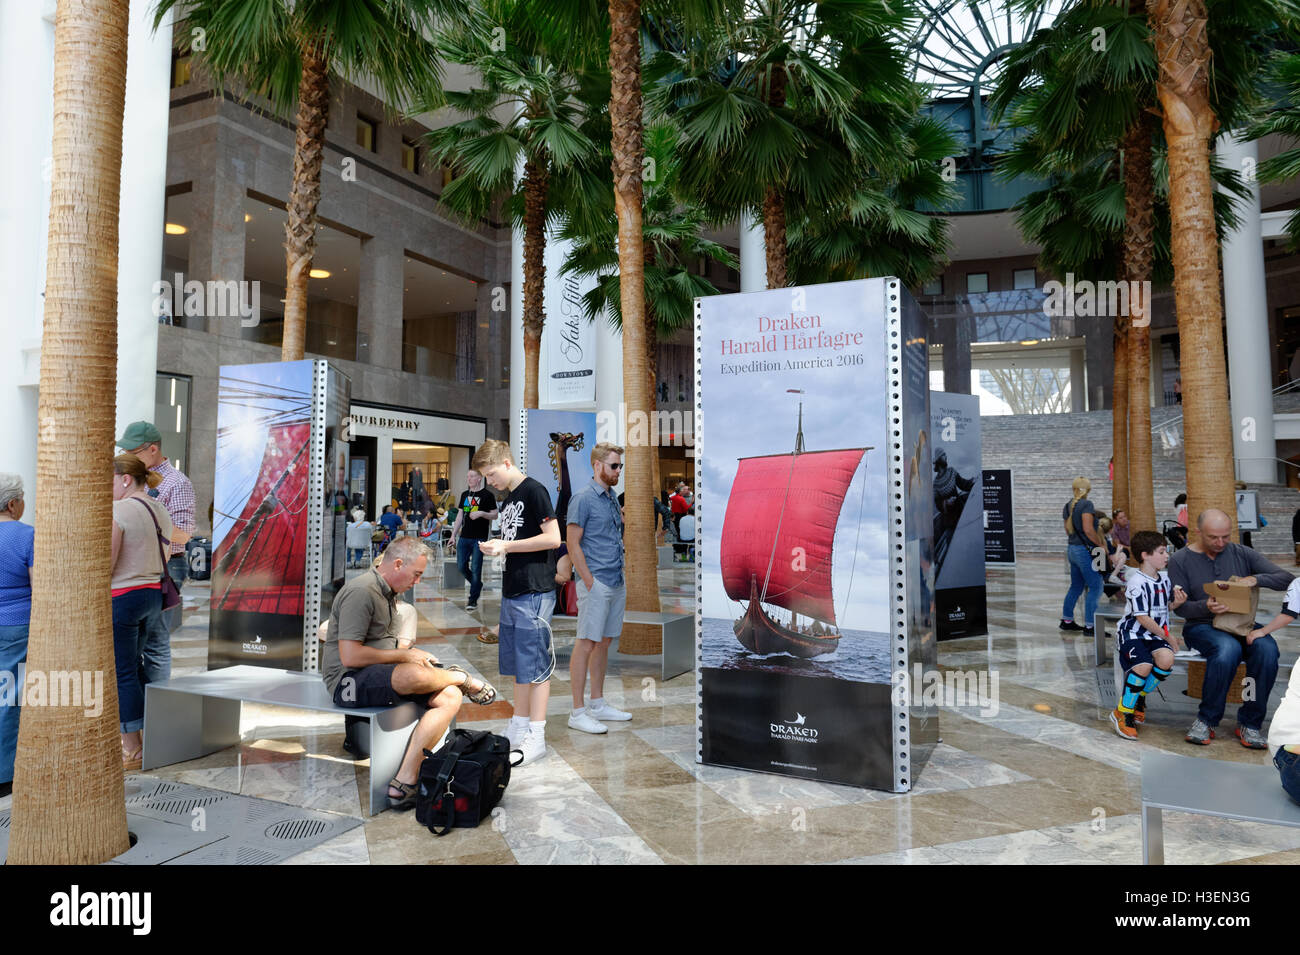 An exhibition associated with the Viking longship, Draken Harald Harfagre, in the Winter Garden at Brookfield Place. - Stock Image